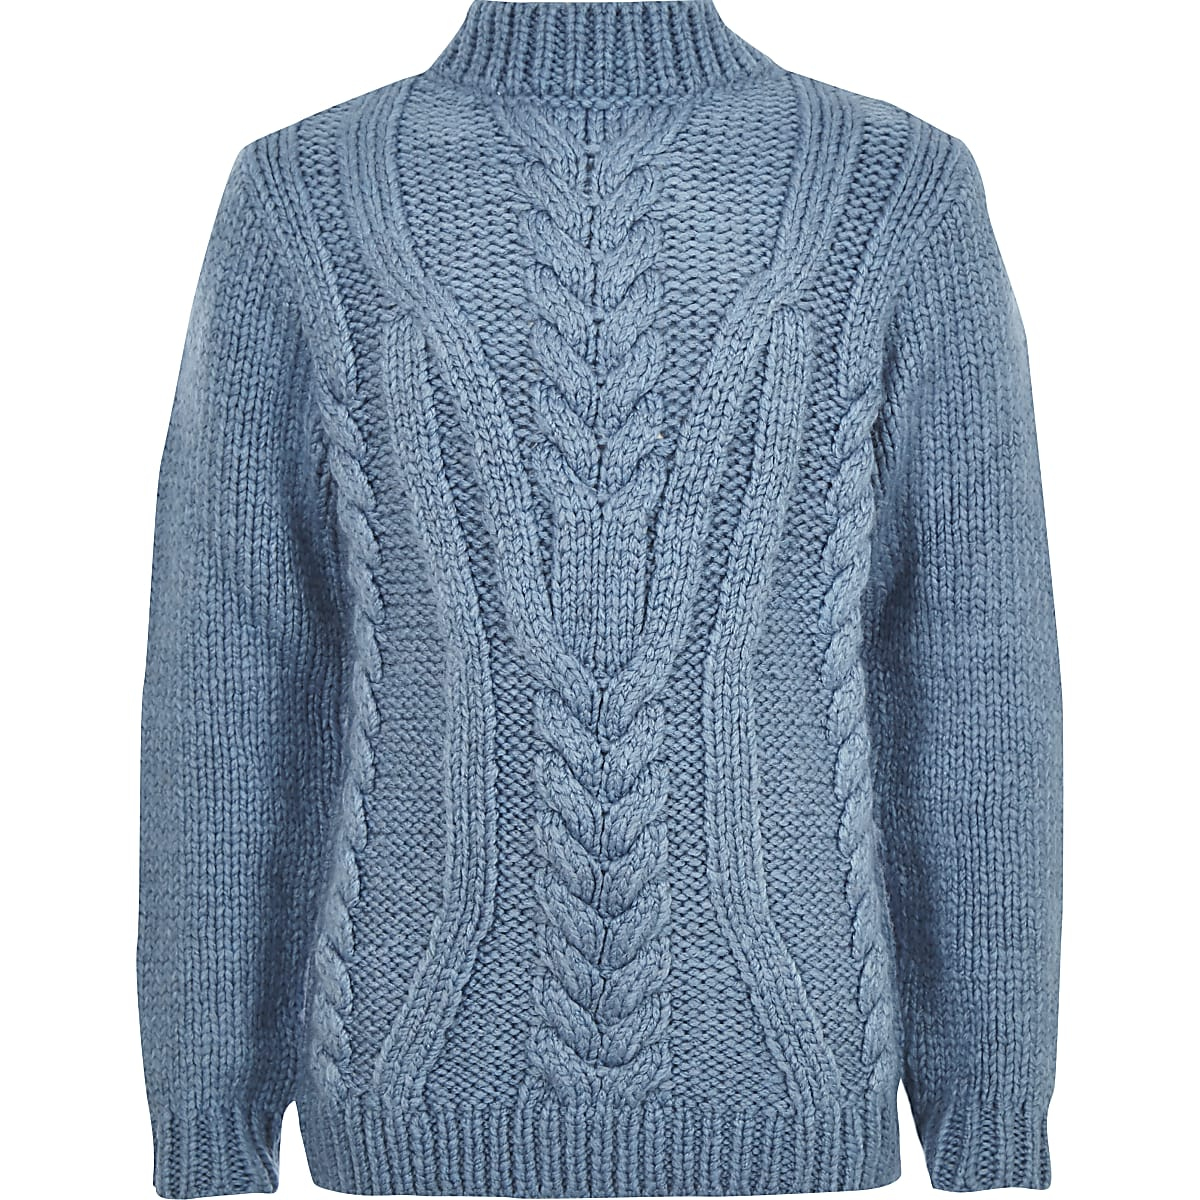 Boys blue turtle neck cable knit sweater